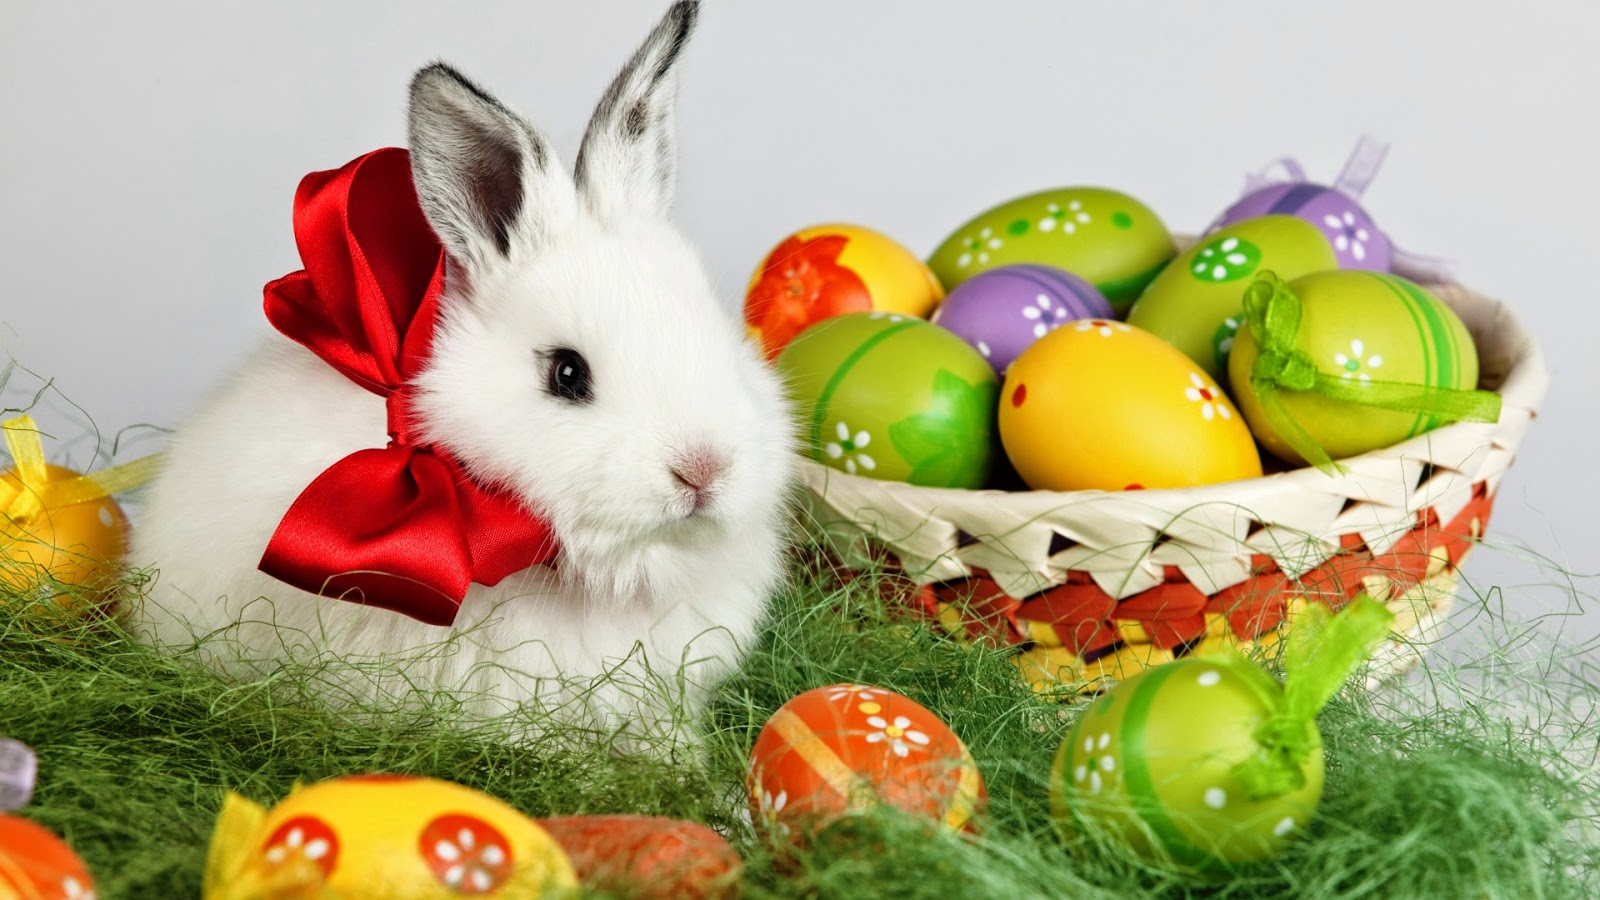 happy easter 2015 easter wishes 2015 easter wallpapers 2015